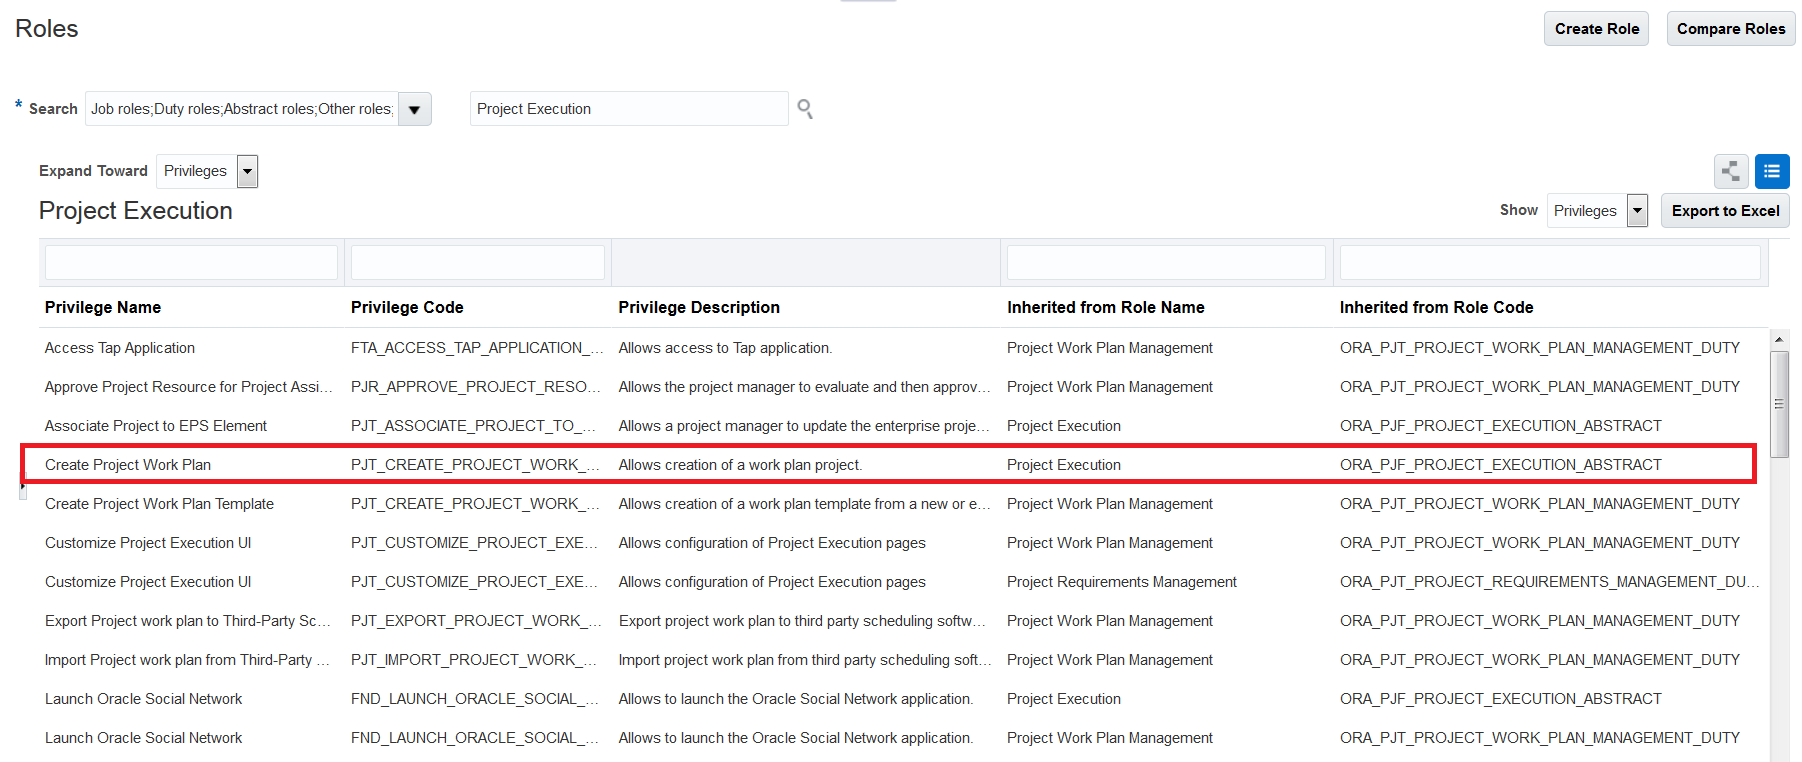 Create Project Work Plan Privilege Allows Users To New Non Financial Projects And The Is Rolled Up Execution Role By Default